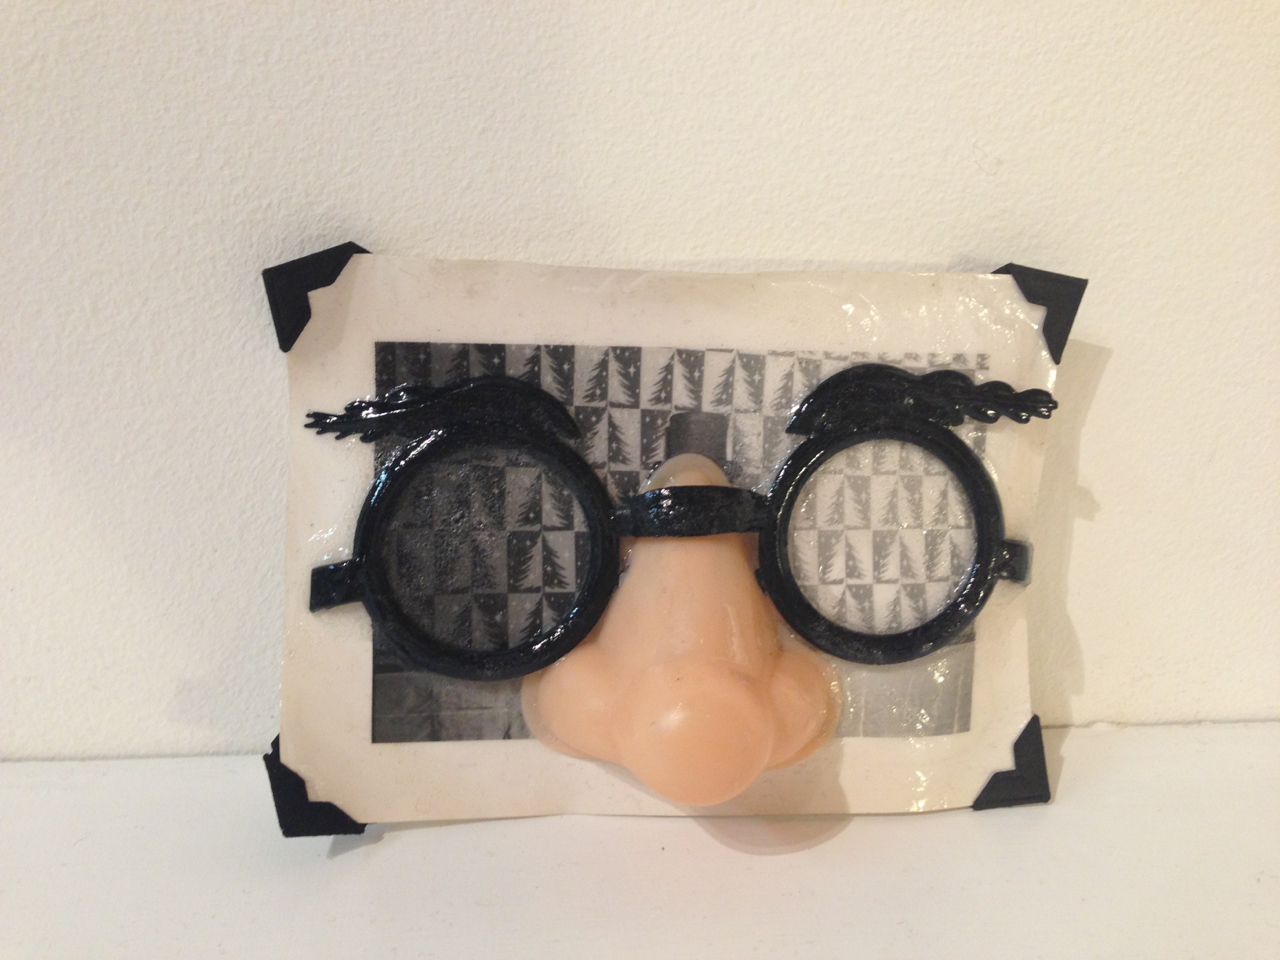 Snapshot and Groucho mask, 2 x 3 x 1 inches, 2013